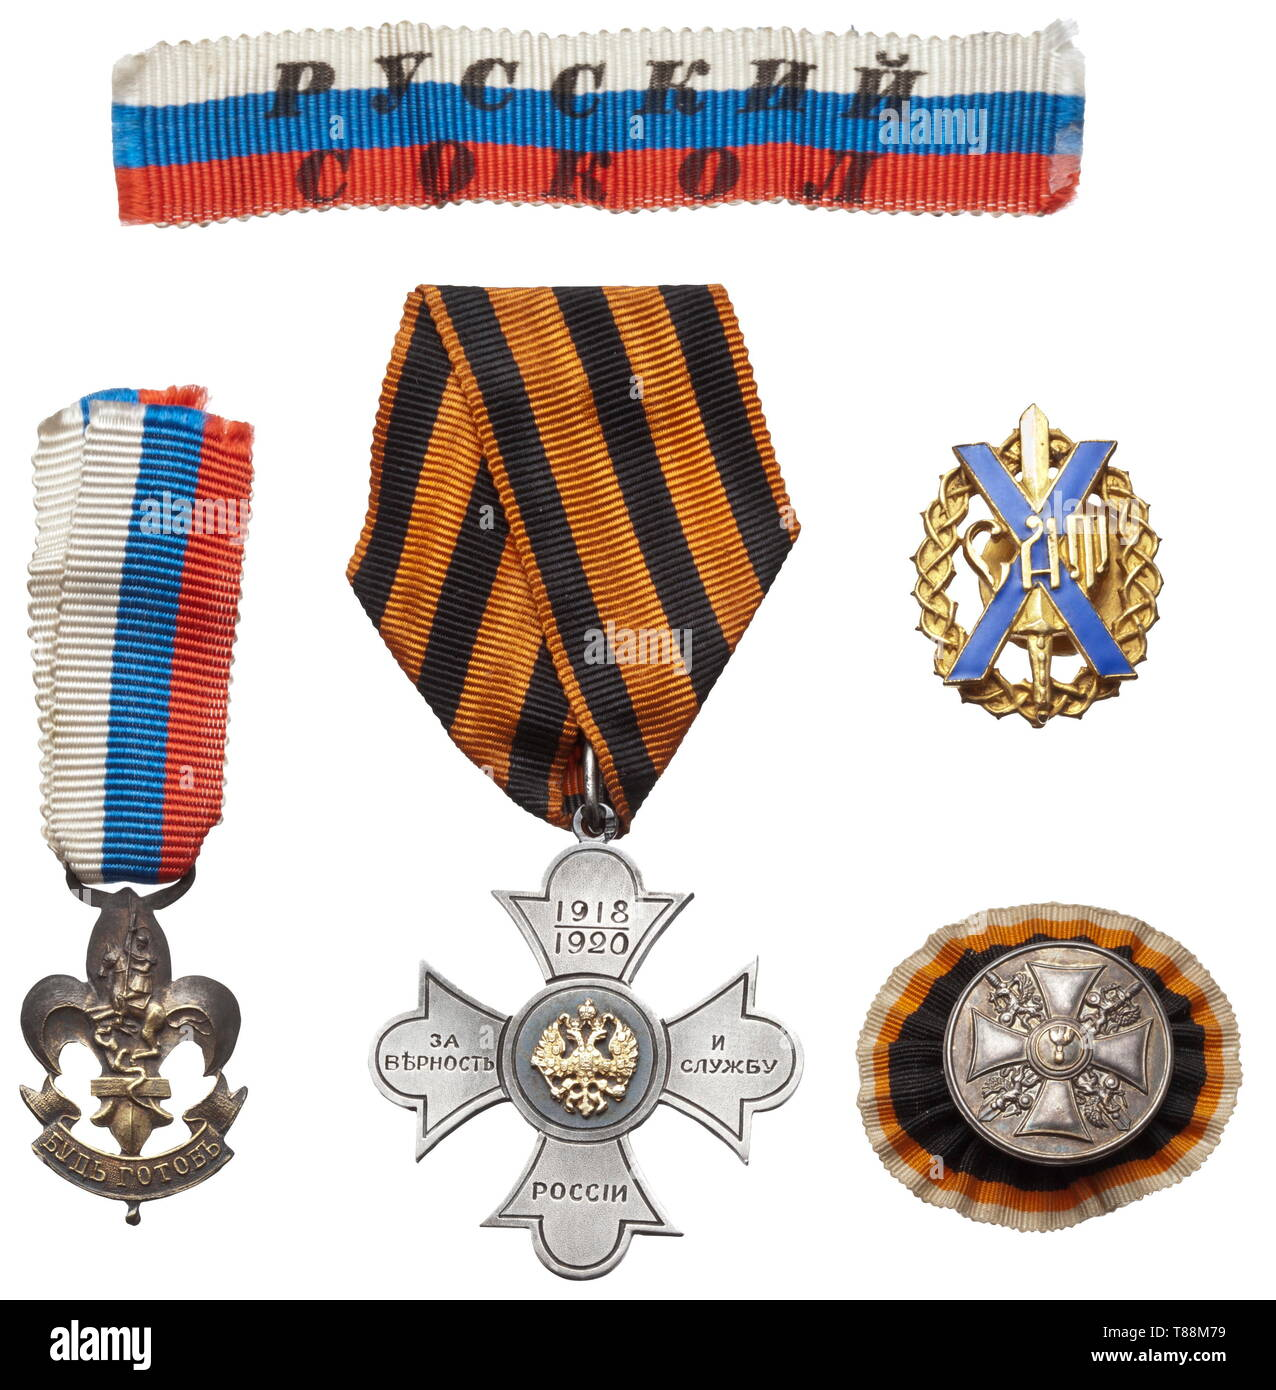 A Russian Cross for Fidelity and Service 1918 - 1920 The cross in silver with applied Russian double-headed eagle of gilt silver affixed by two rivets. The obverse bears the engraved name of the award, whilst the reverse carries the registration number 'No. 1' and the wearer´s name 'Generalleutnant Glasenapp'. The eyelet bears the Polish punch mark '2' for 875 silver fineness, a female head and a 'W'. With the original pentagonal ribbon of the Order of St. Andrew. Width 38.7 mm. Weight with ribbon 11.9 g. This hardly-known decoration of t 20th ce, Additional-Rights-Clearance-Info-Not-Available - Stock Image